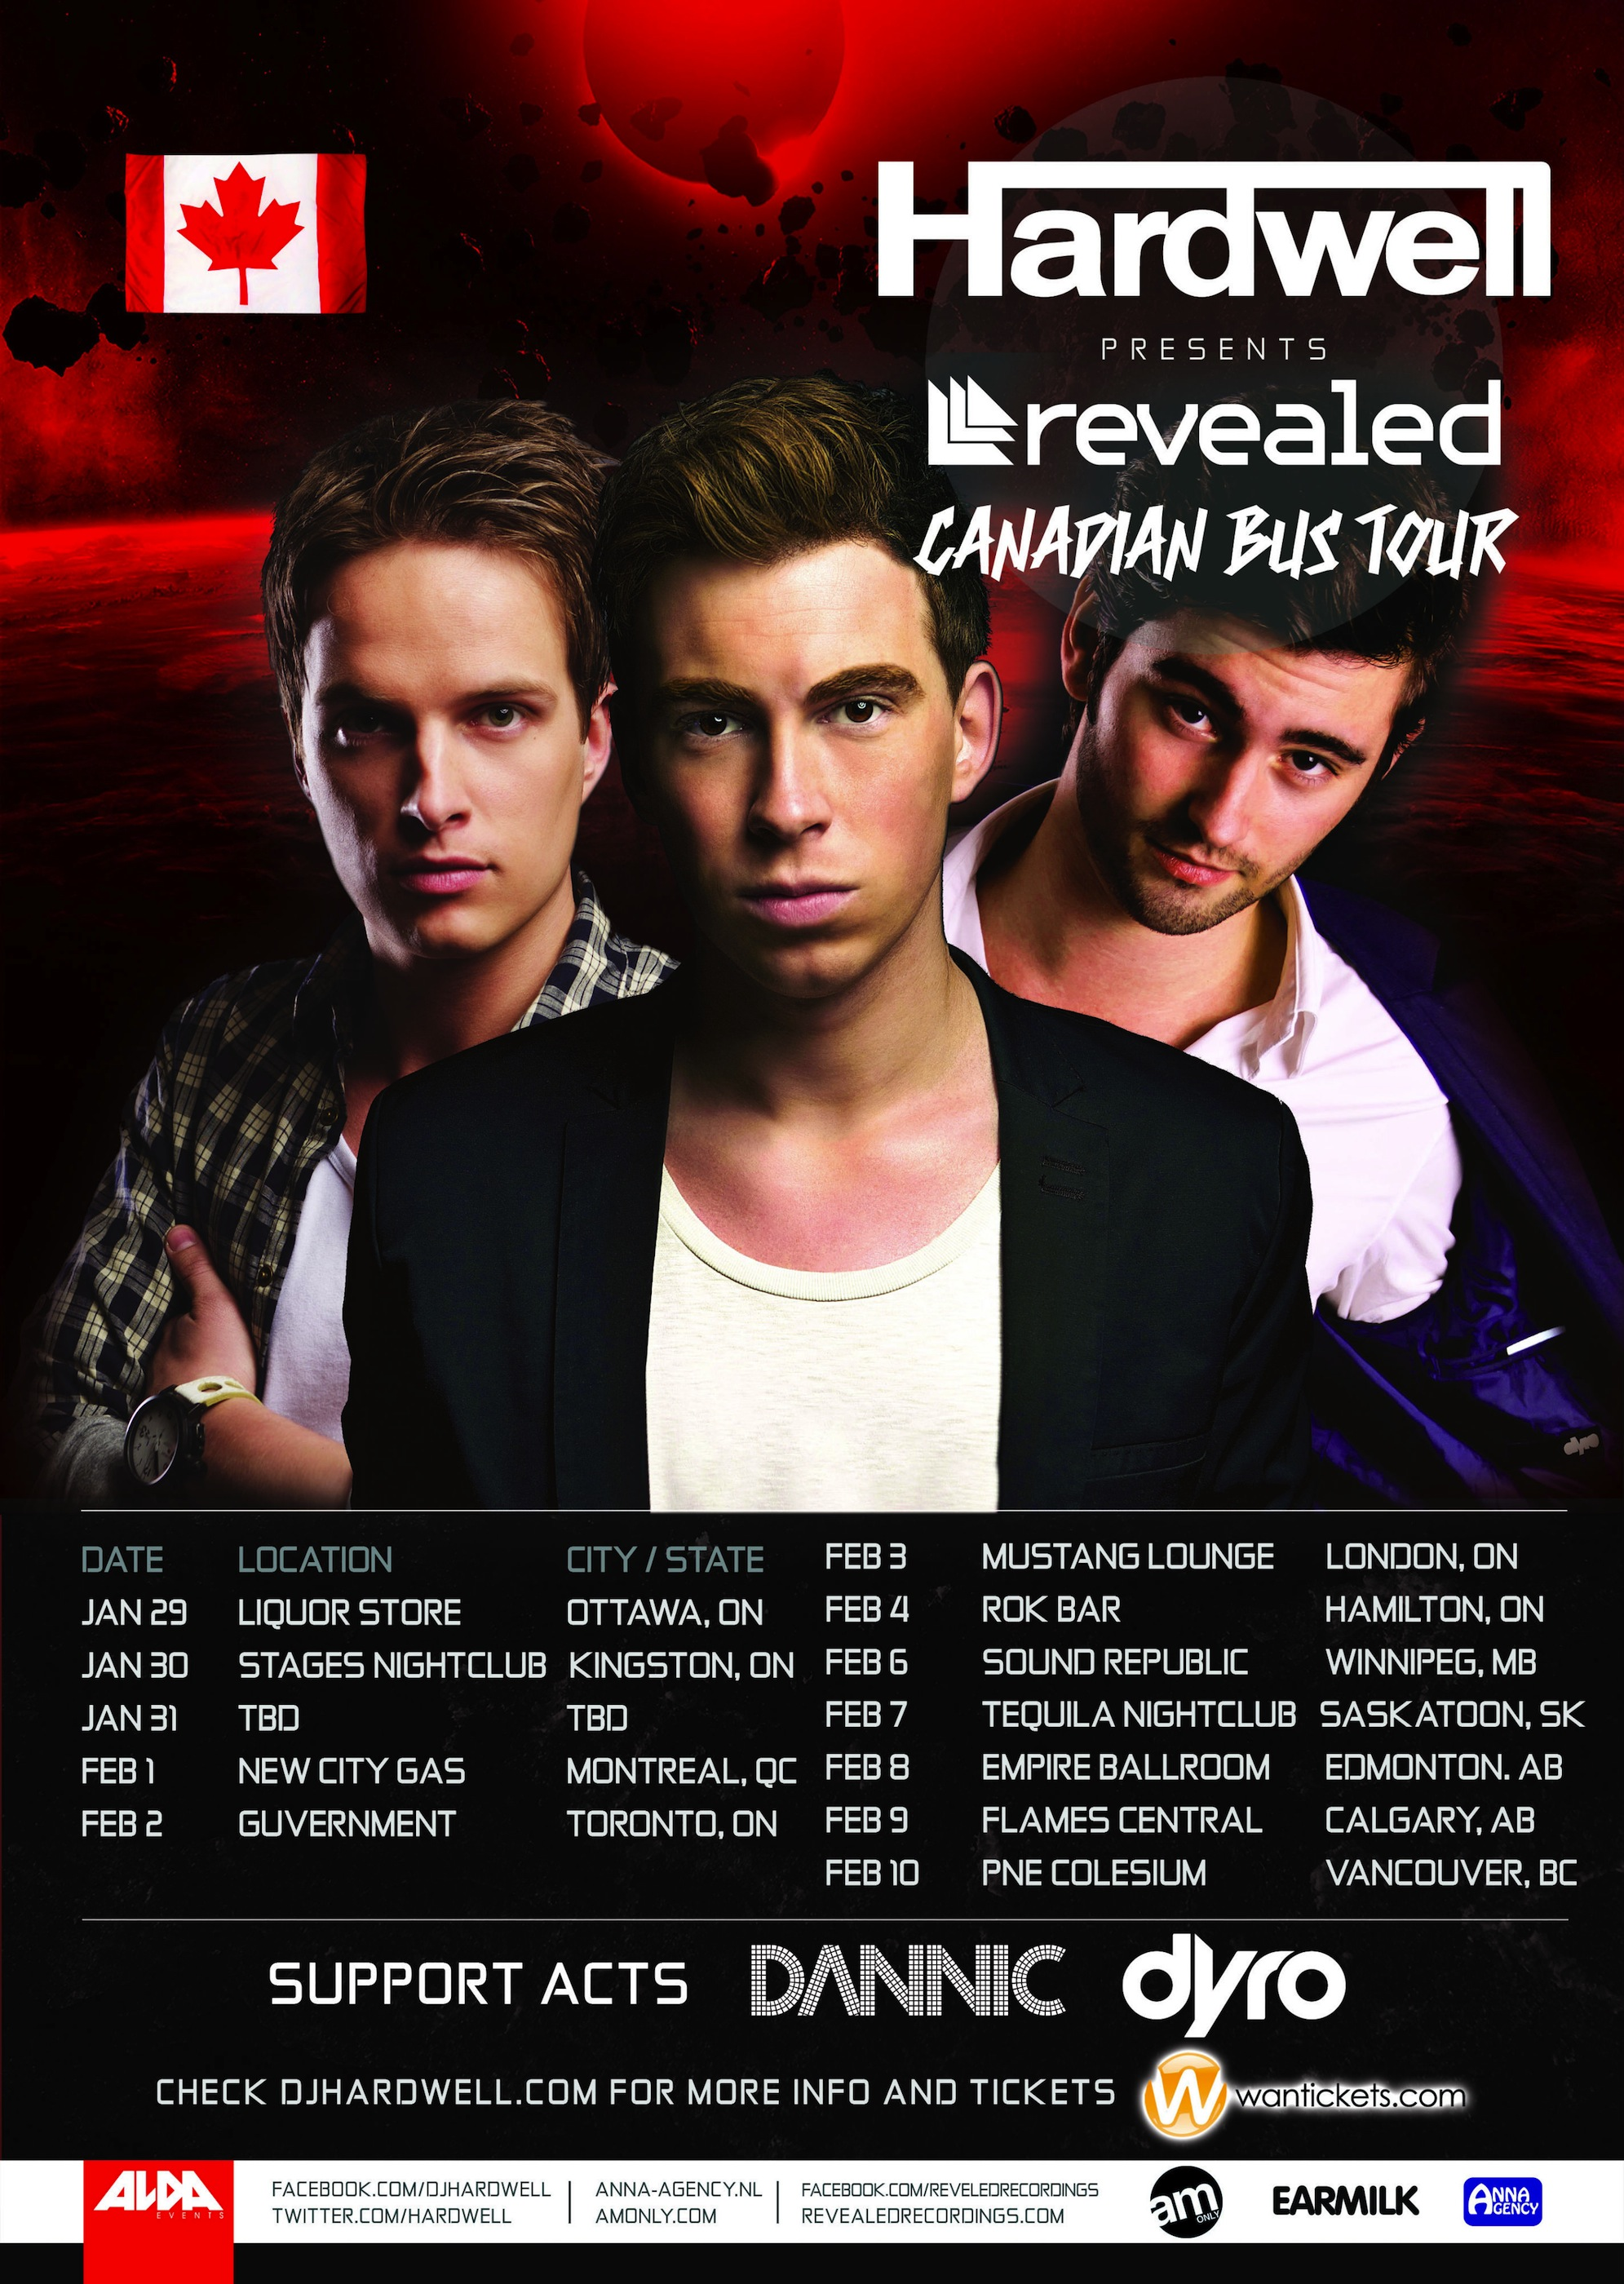 Hardwell Revealed Canadian Bus Tour Tickets